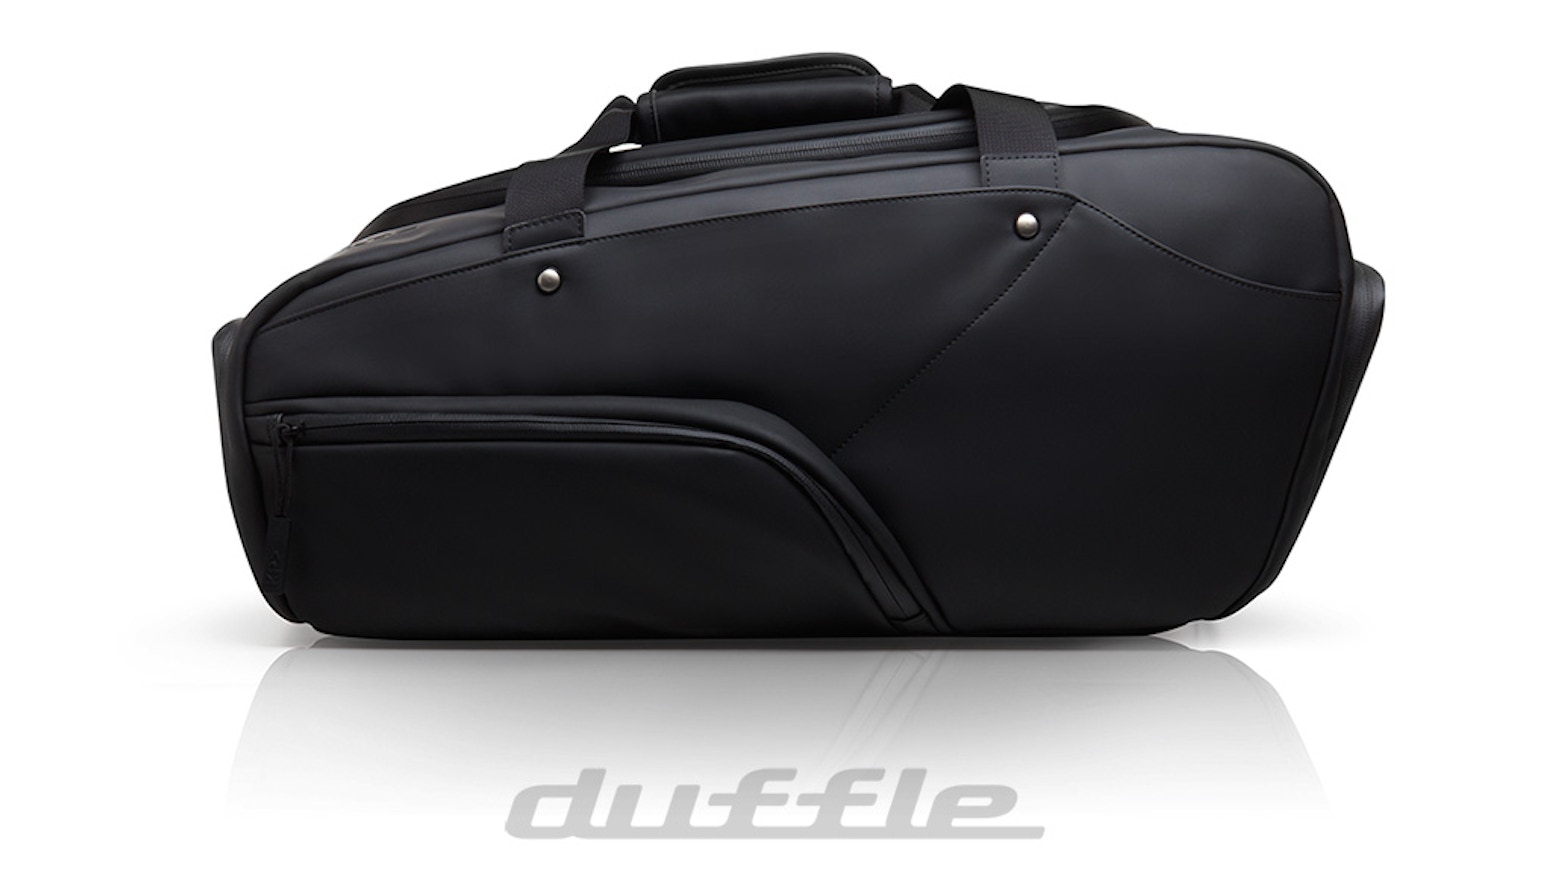 6fd35d40ddd KP Duffle - The Ultimate Travel Bag. A bag that not only has a stunning  appearance but offers functionality and performance second to